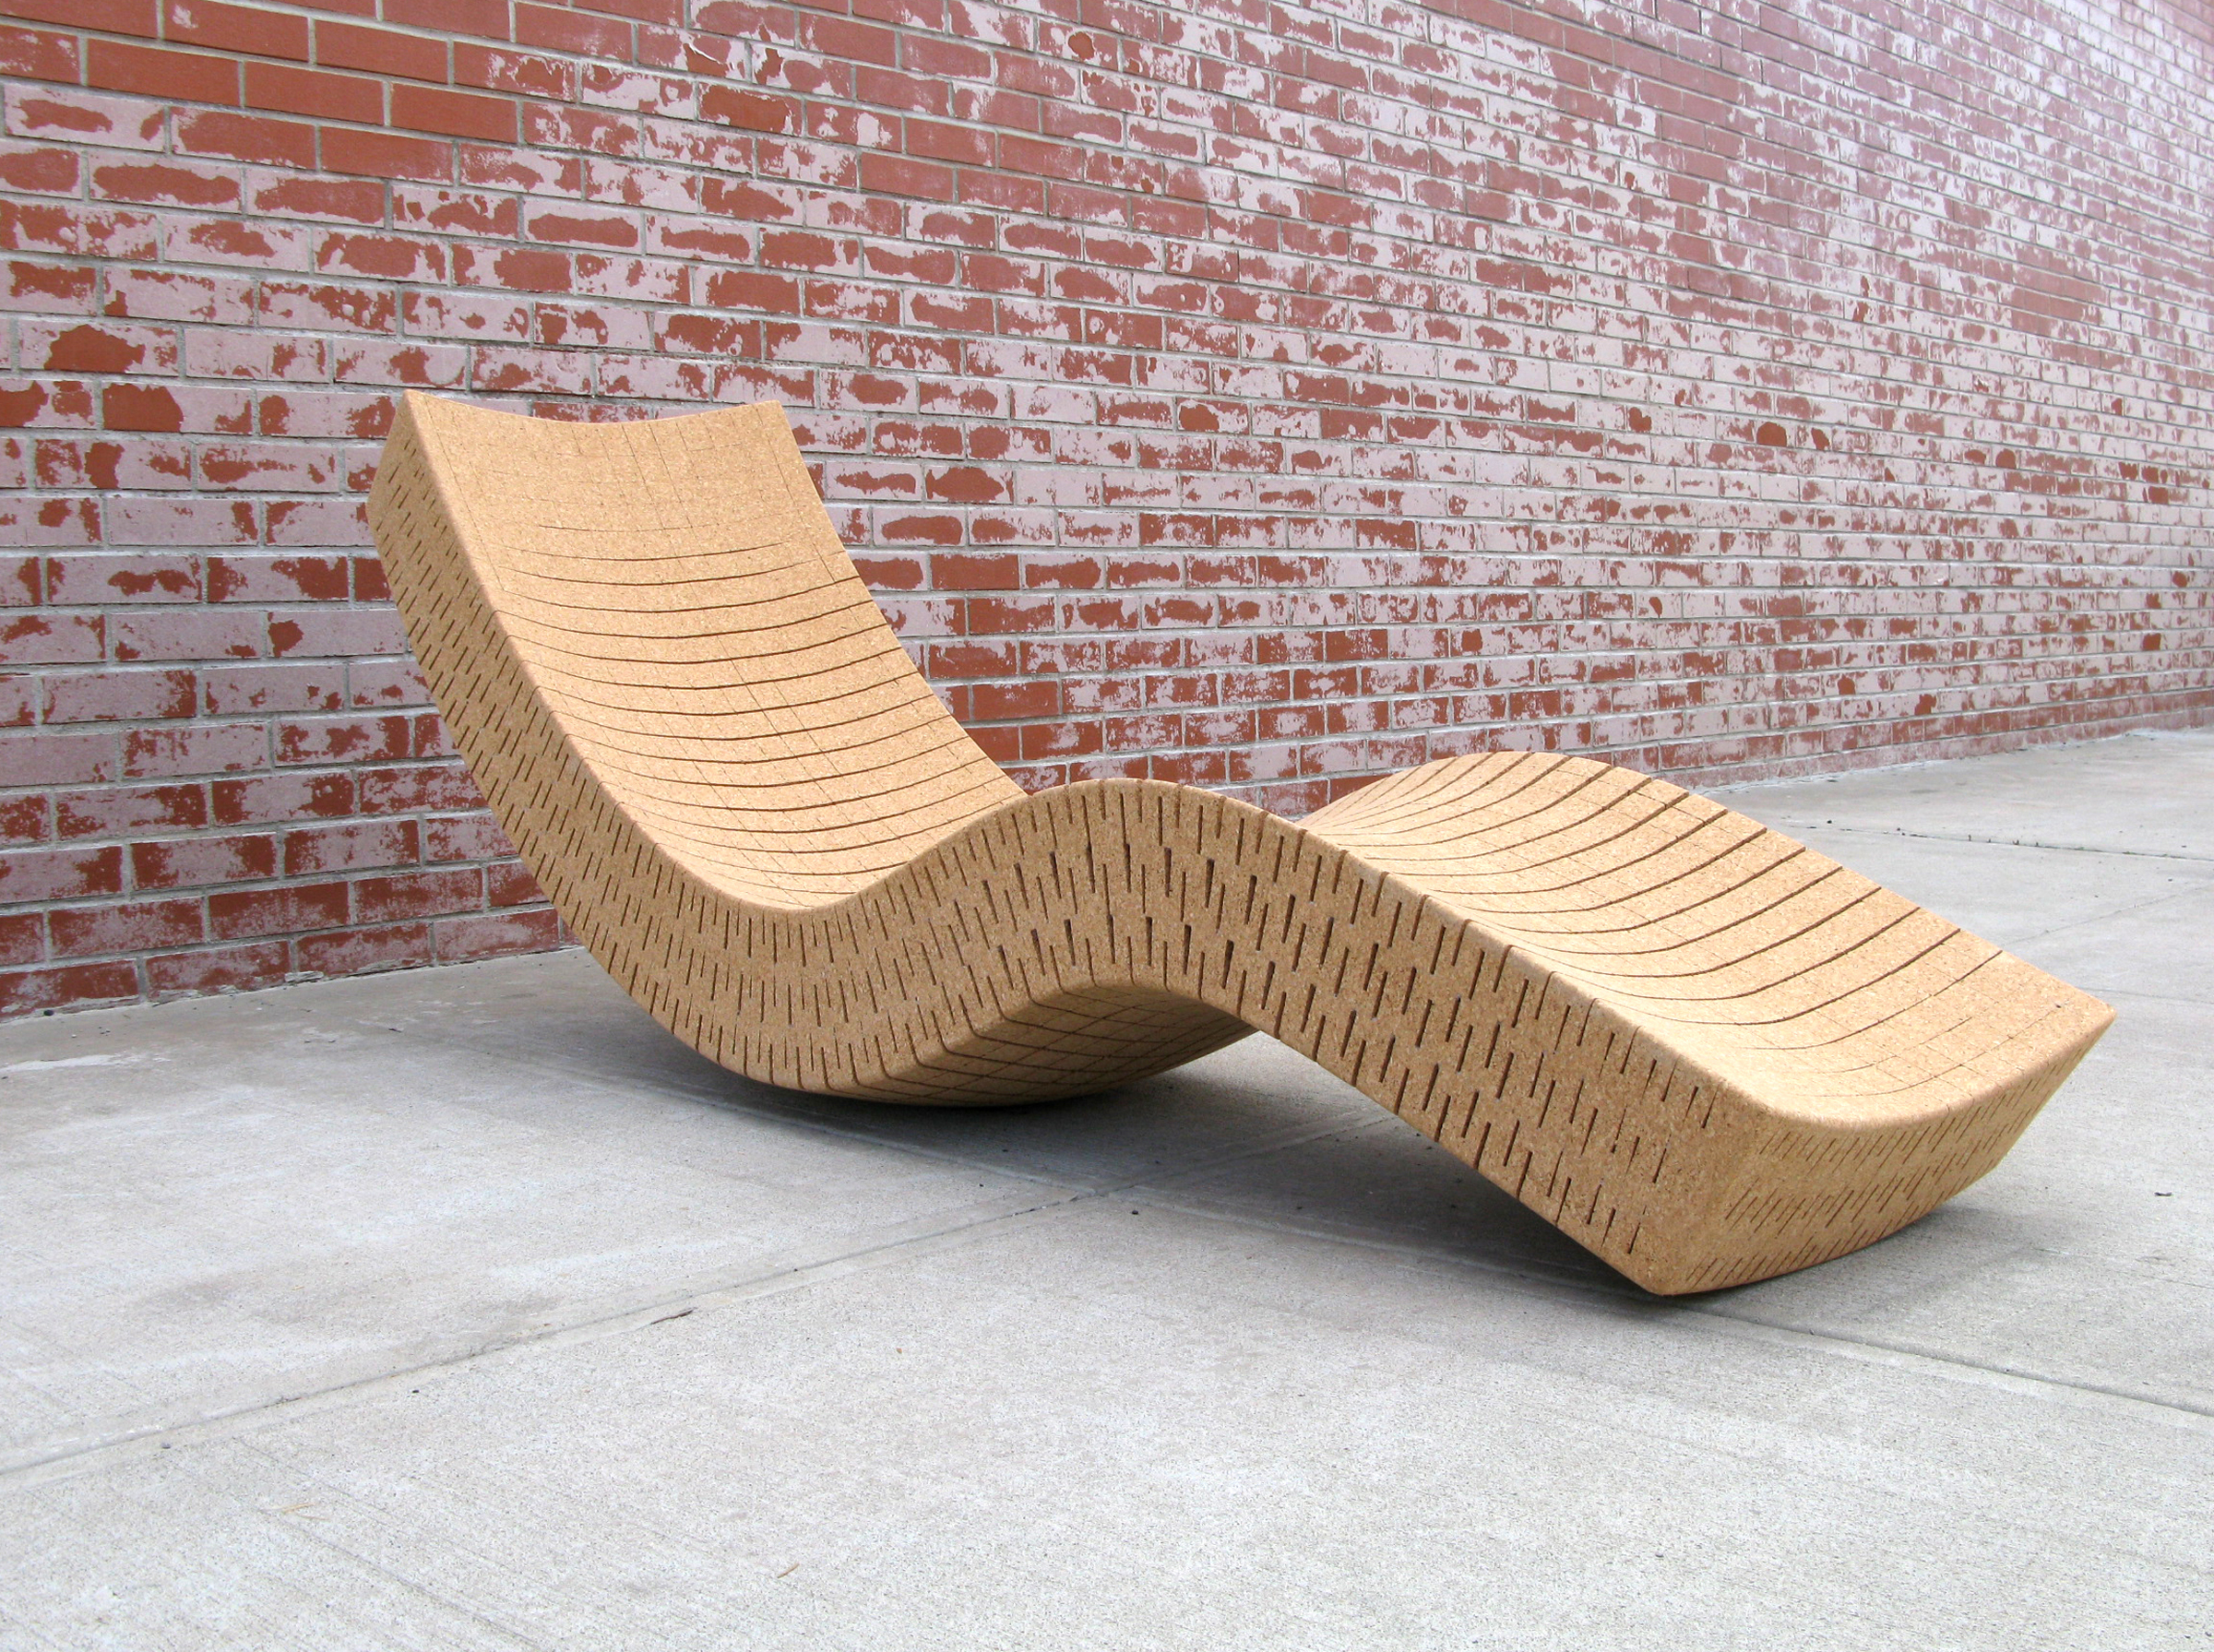 "Cortiça chaise longue    26"" H x 20"" W x 74"" L. 100% Recycled Cork  Handmade to order, this full size chaise lounge allows for gentle rocking both side to side and front to back, providing a sense of effortless floating.  Suitable for indoor/outdoor use. Standard wait time is 6-8 weeks.  SHOP"